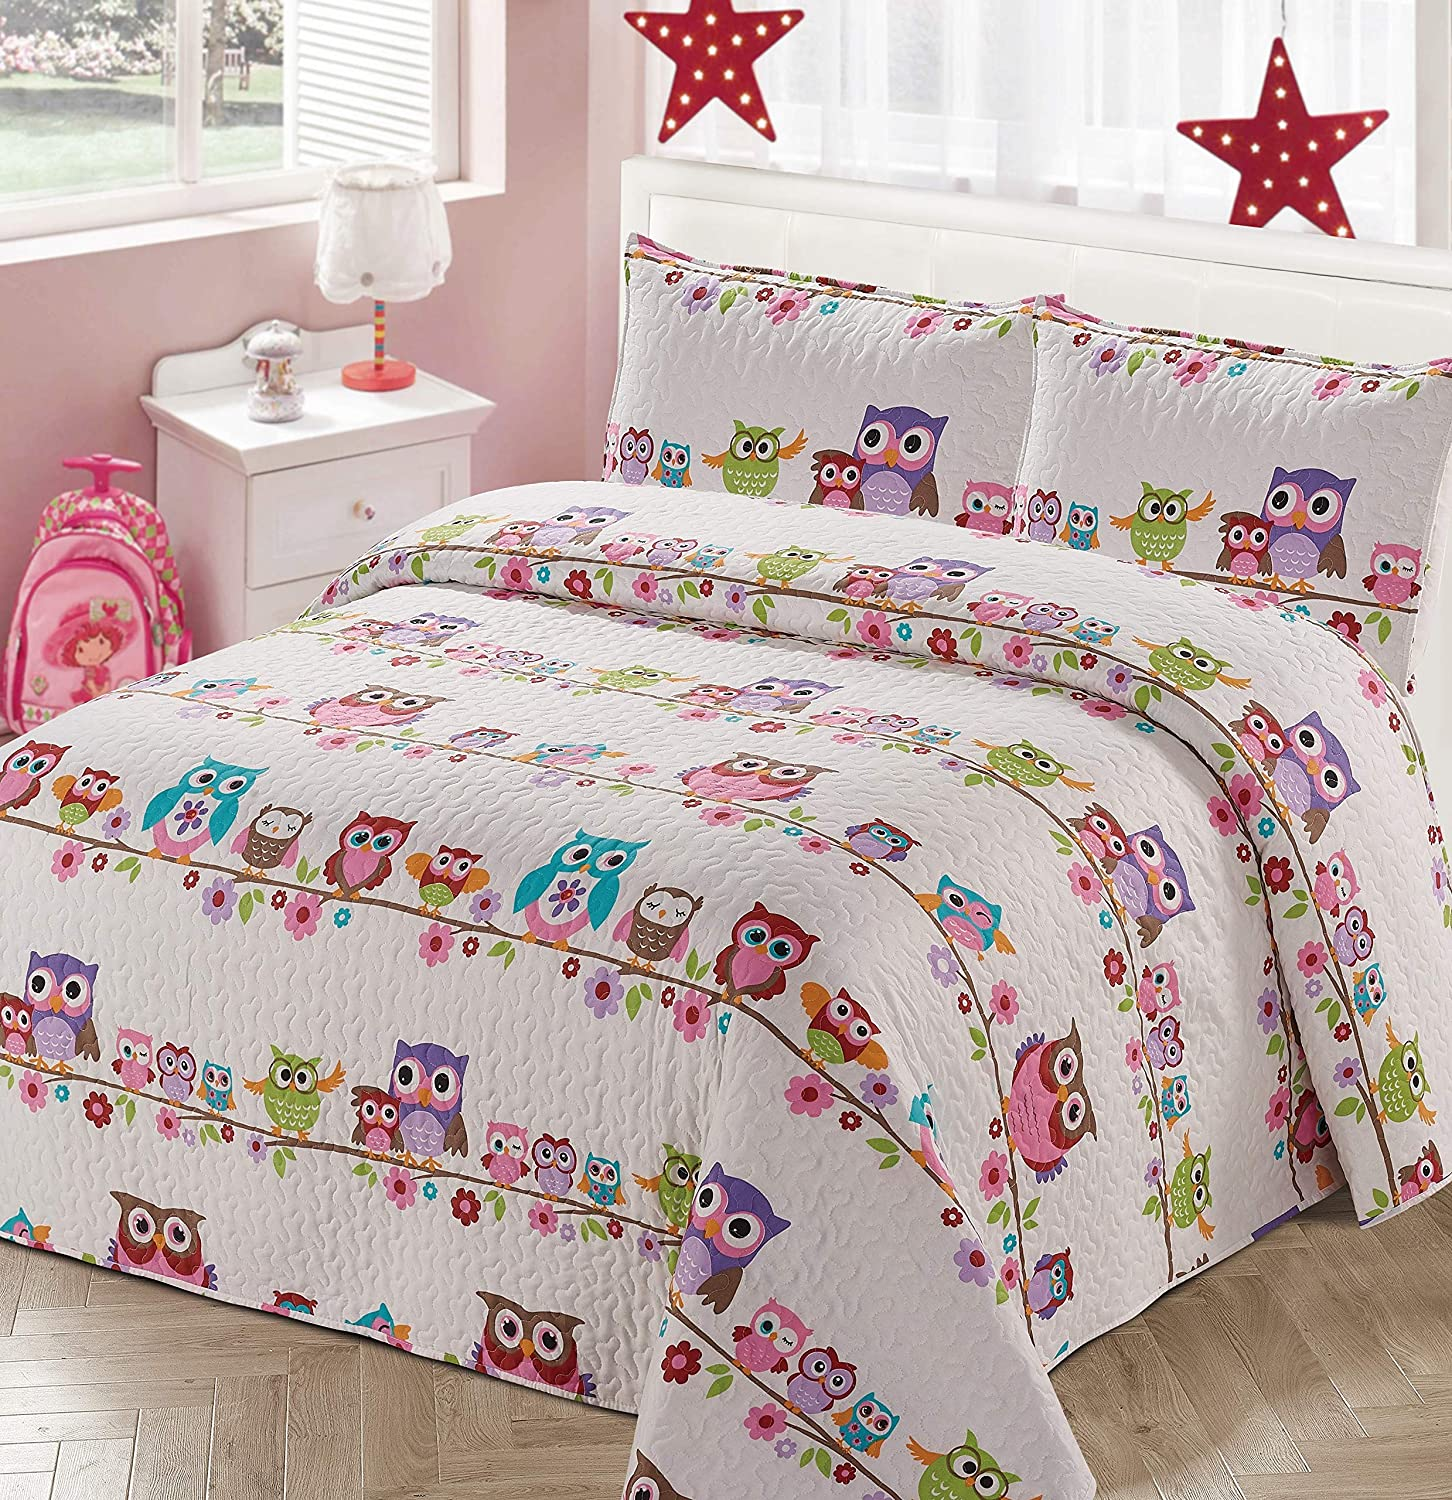 Kids Zone Home Linen 2pc Twin Bedspread Coverlet Quilt Set for Girls with Multi-Color Owls Flowers White Pink Purple Green